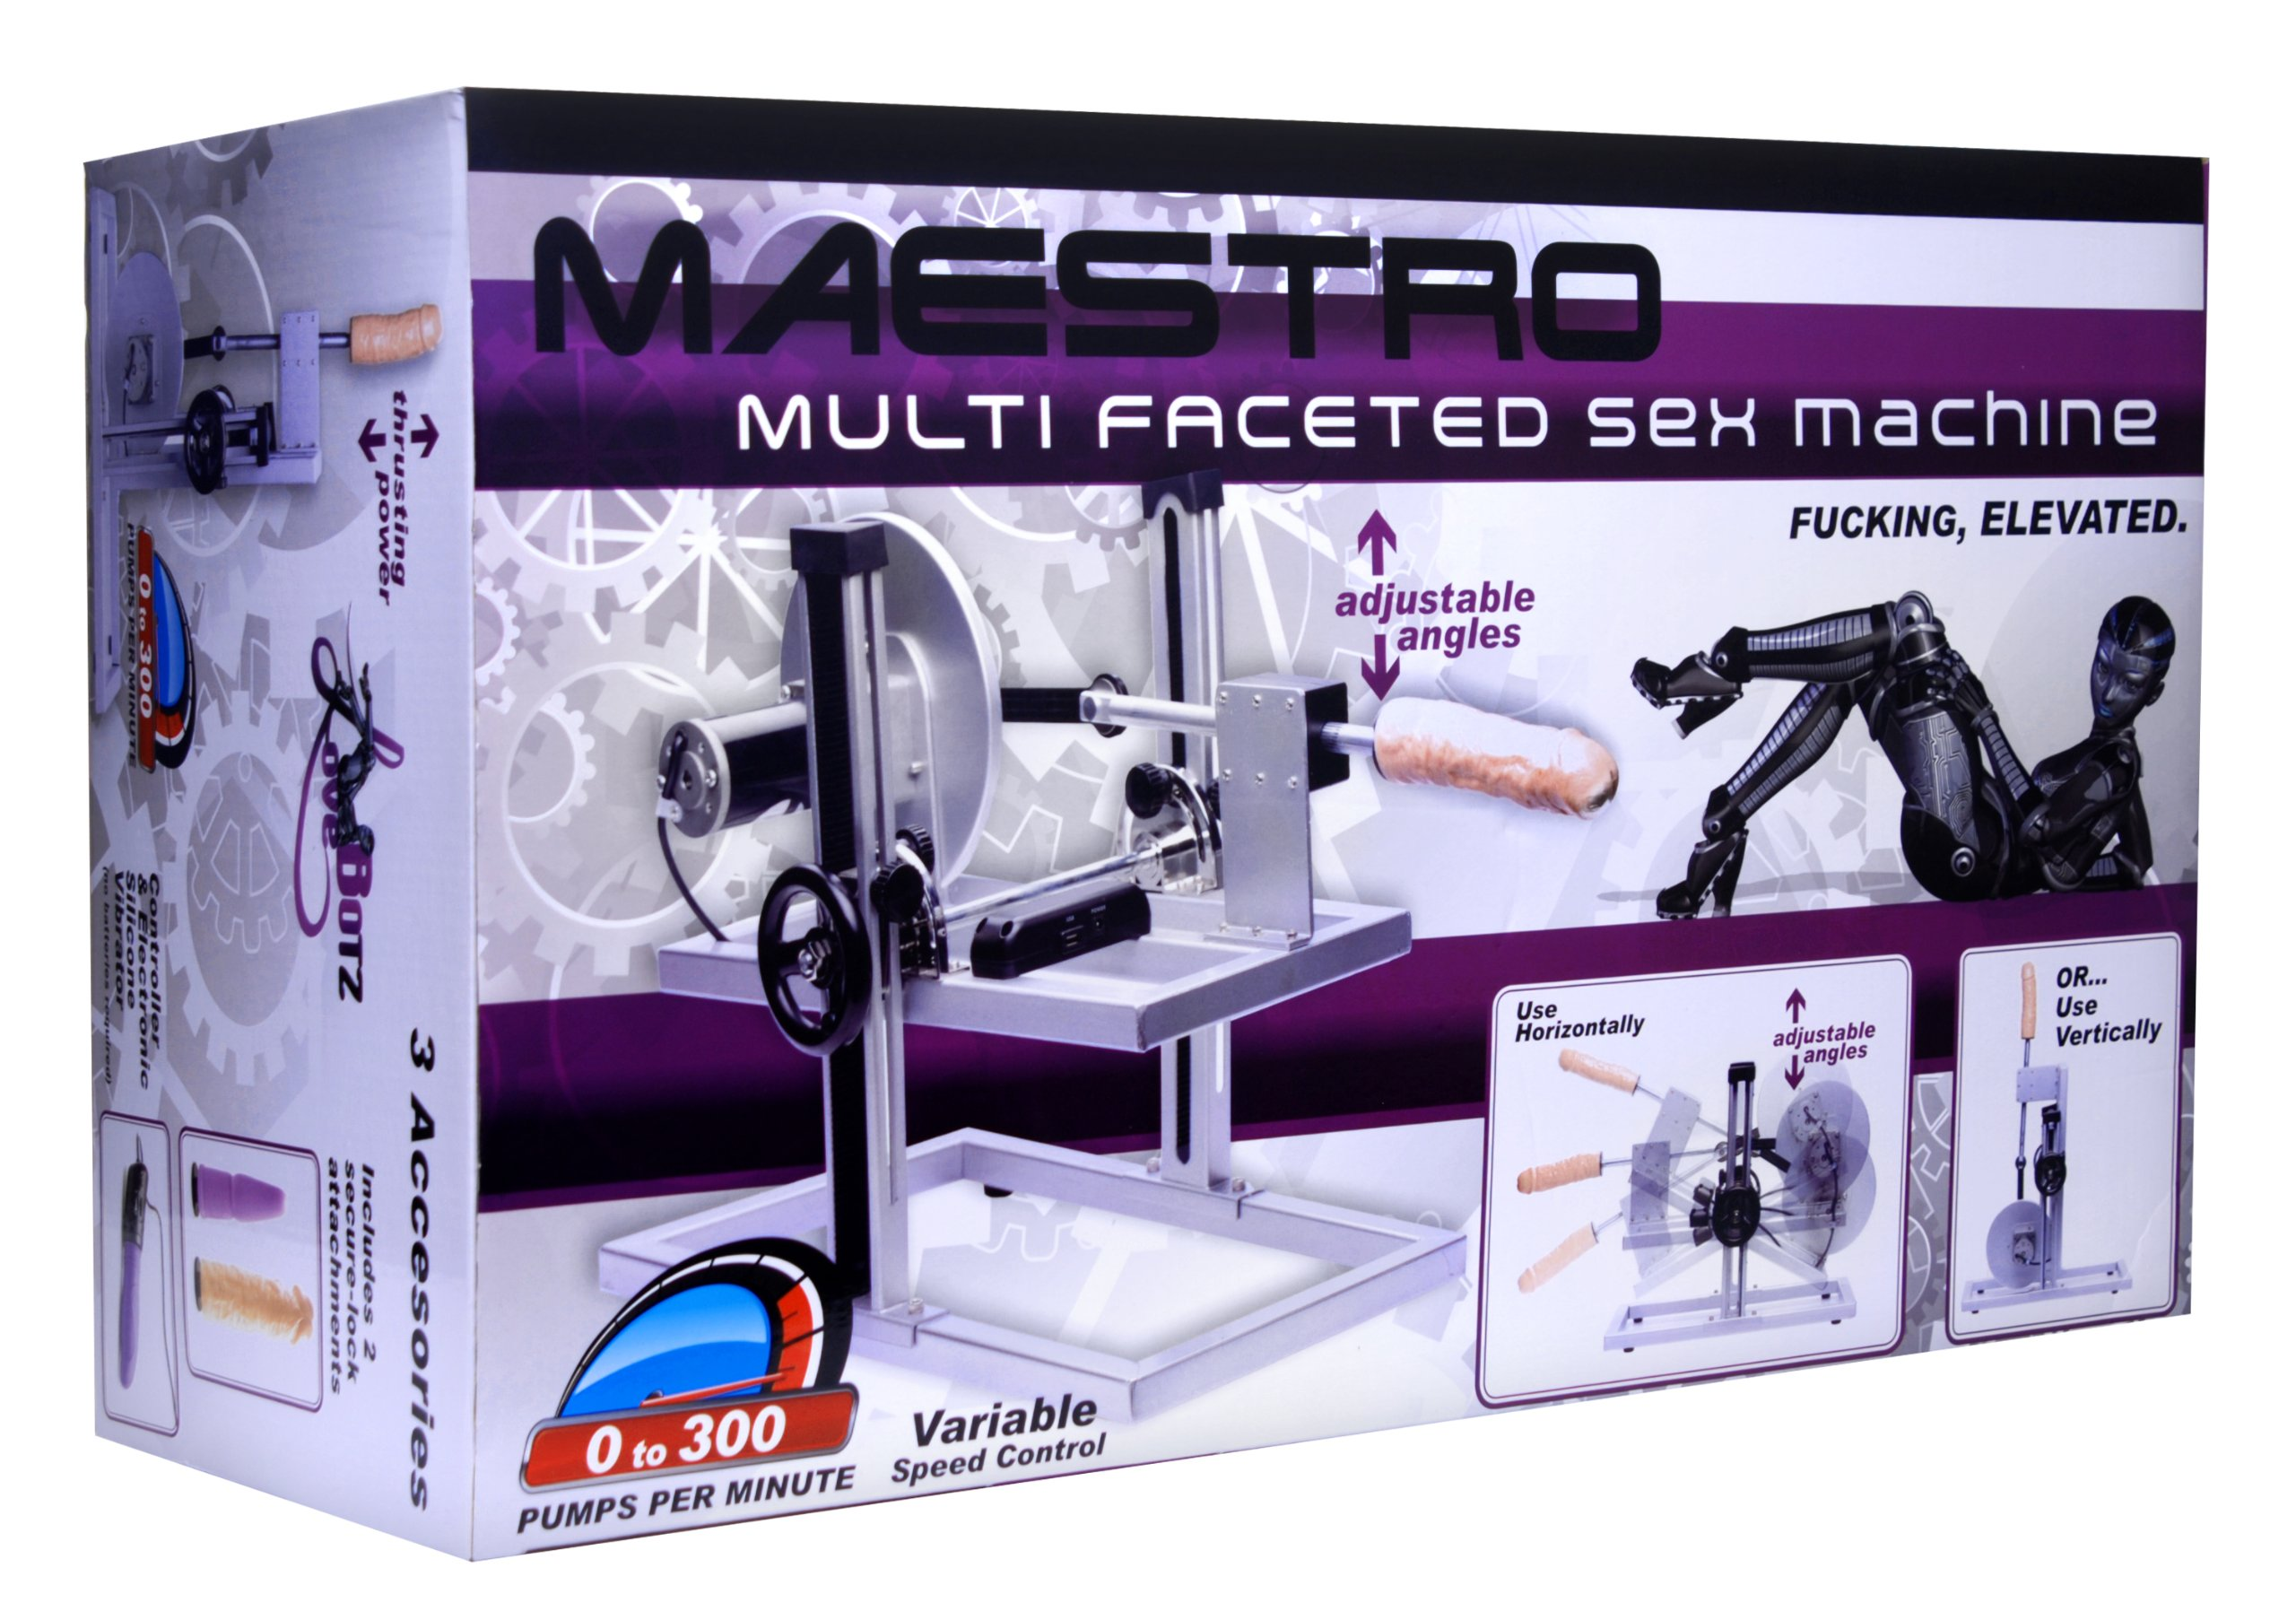 Lovebots Maestro Multi-faceted Sex Machine by LoveBots